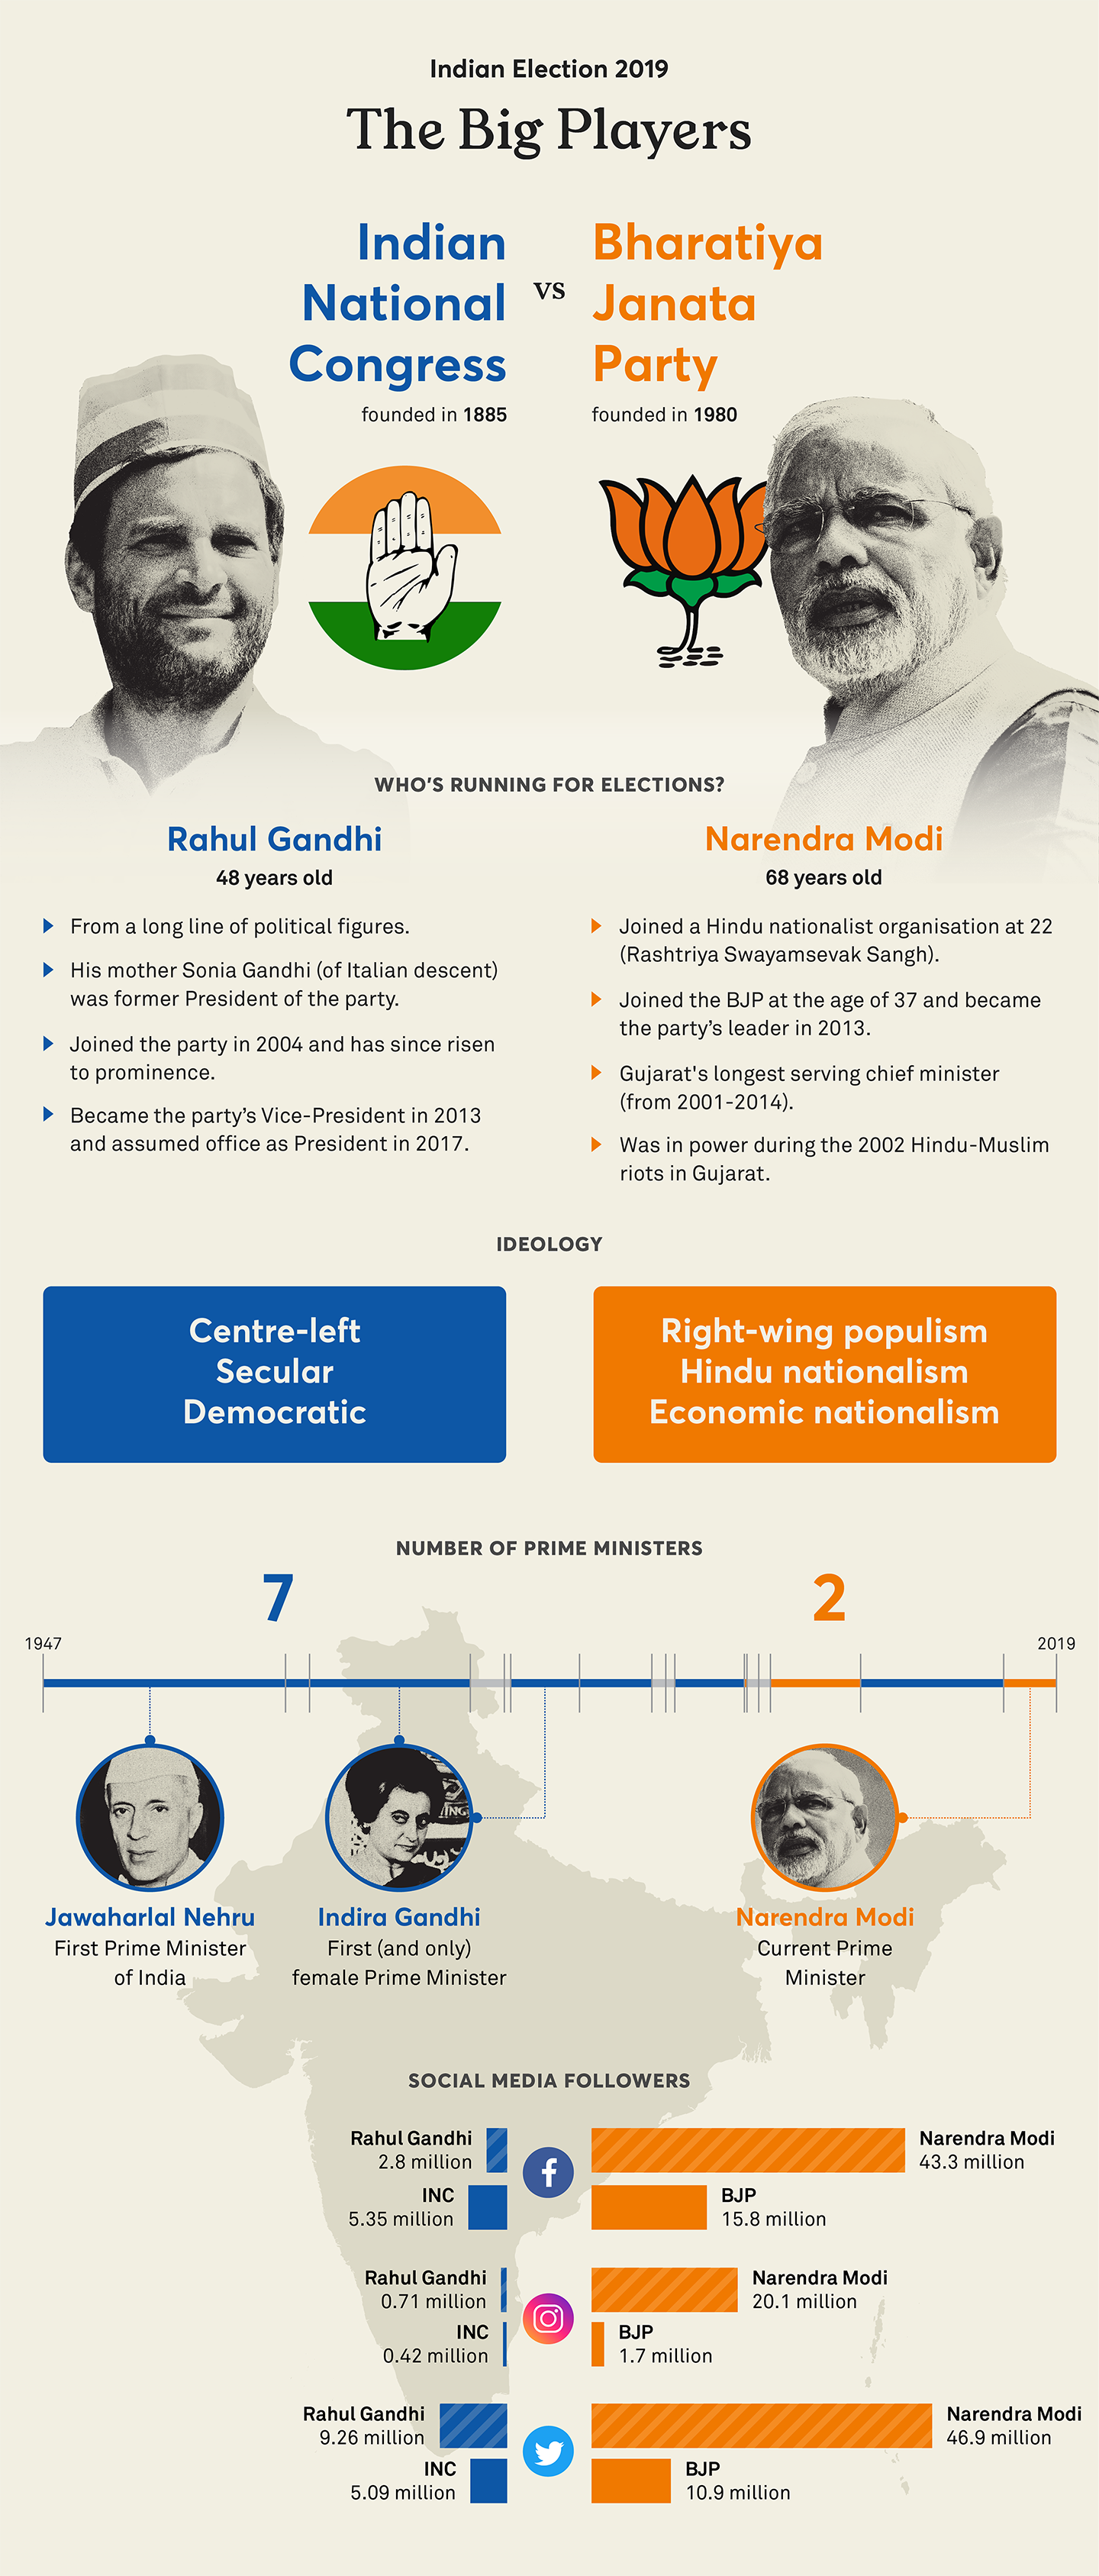 An infographic showing Rahul Gandhi and Narendra Modi, the main players of the 2019 Indian elections, their social media following, and the history of India's prime ministers.